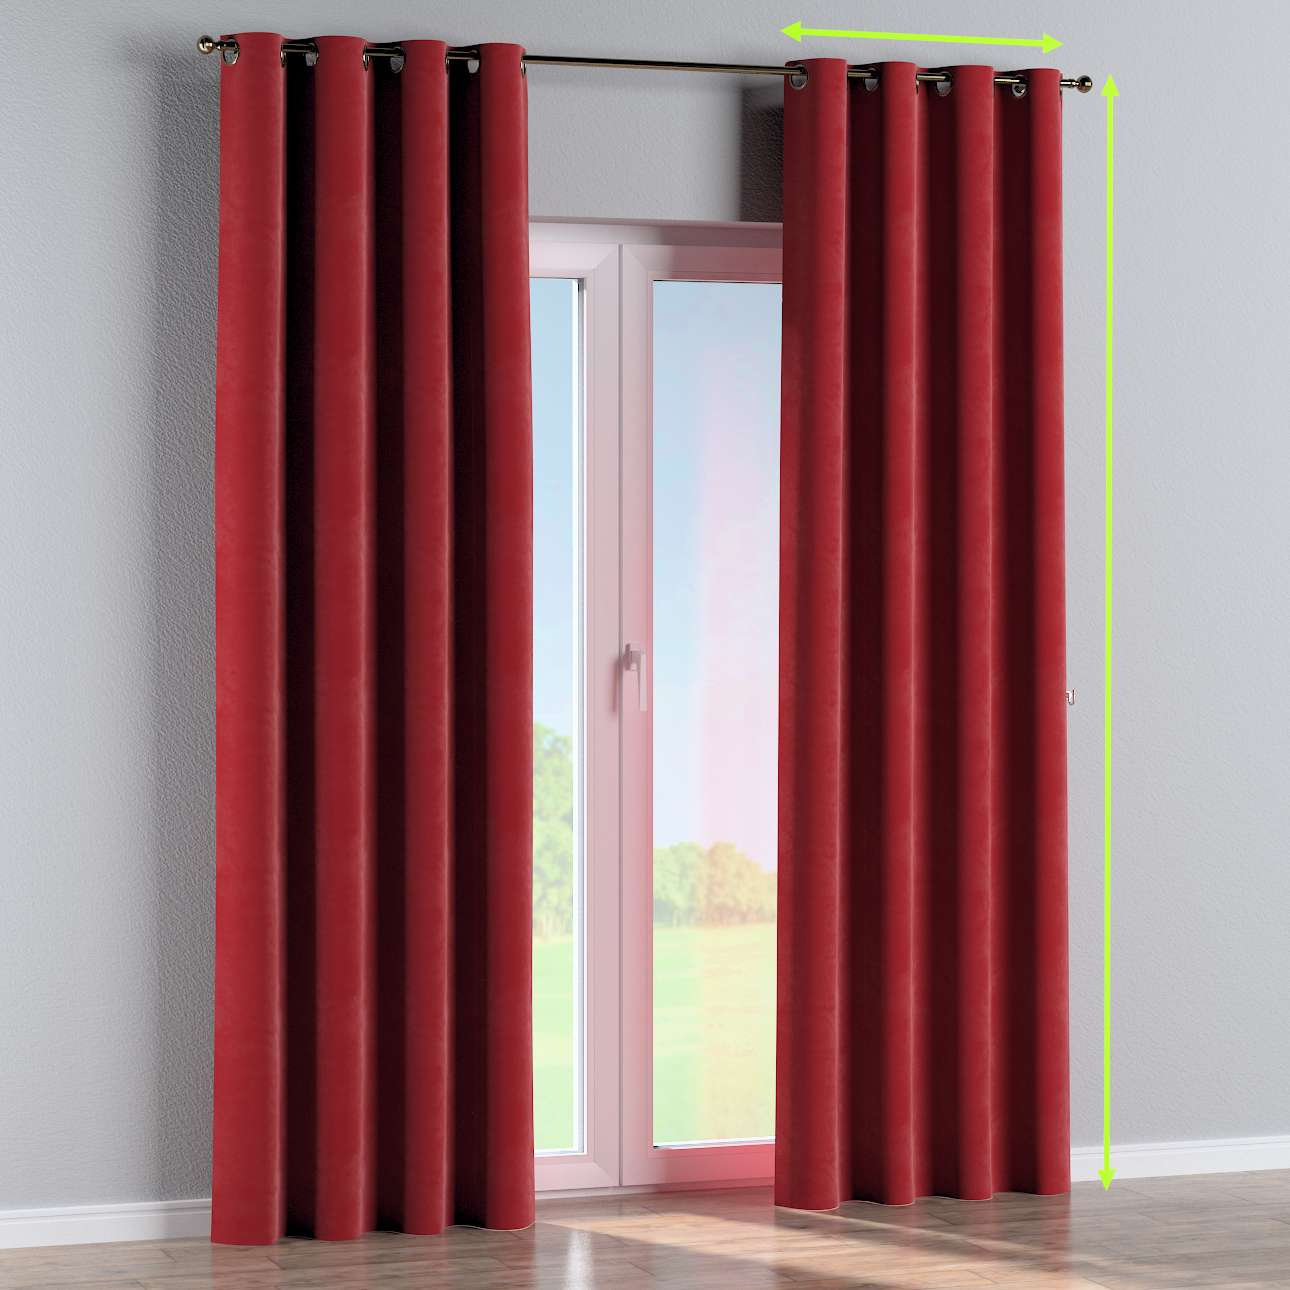 Eyelet lined curtains in collection Velvet, fabric: 704-15